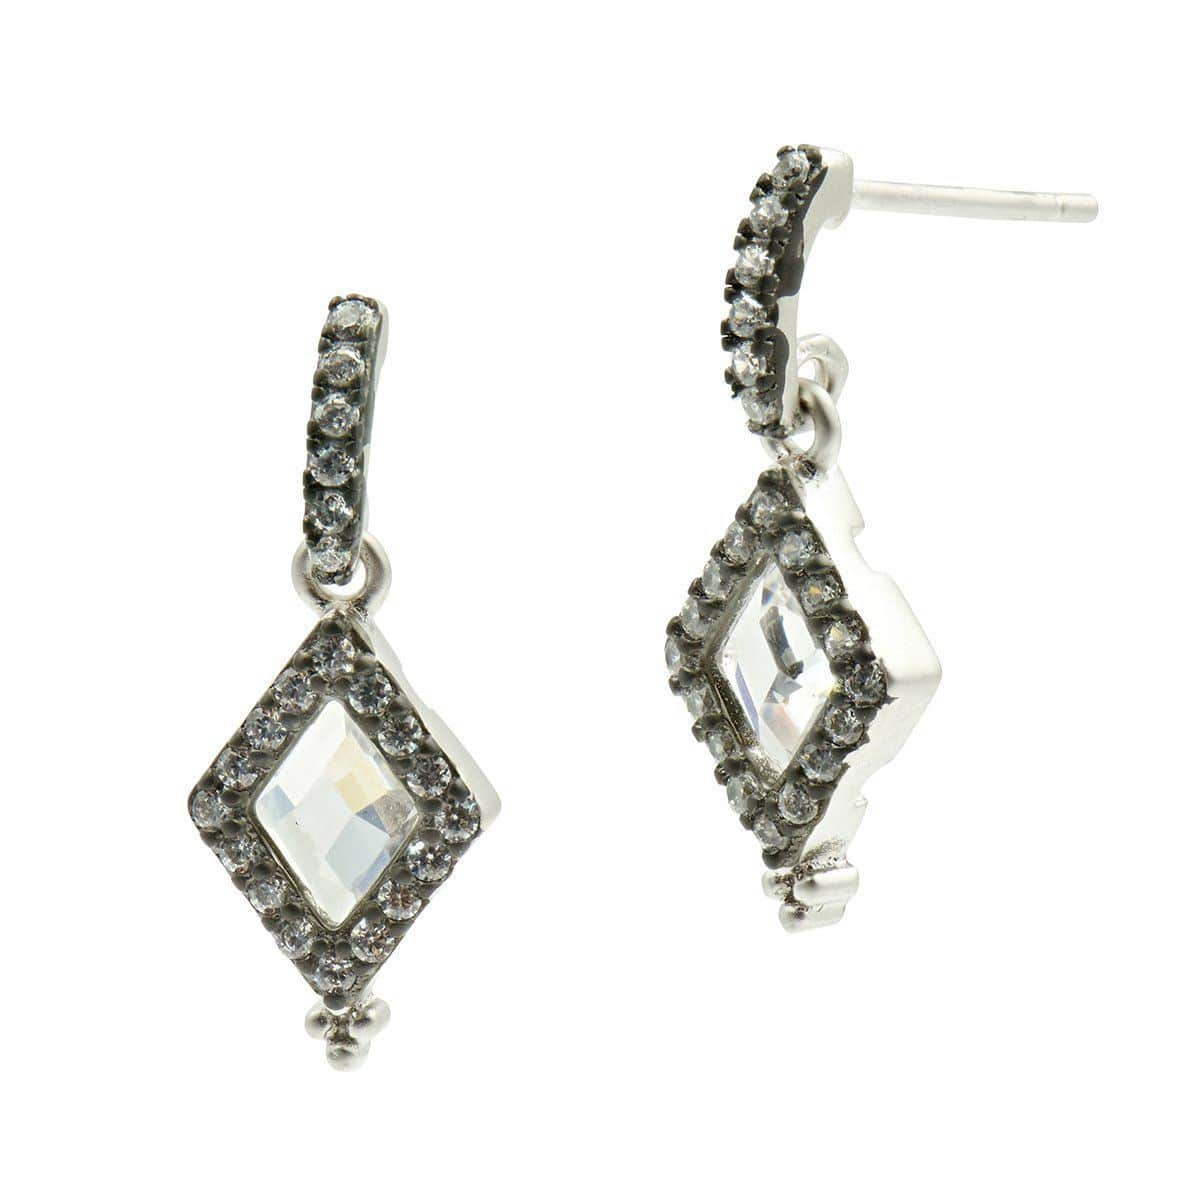 Industrial Finish Diamond Shape Drop Earrings - IFPKZE16